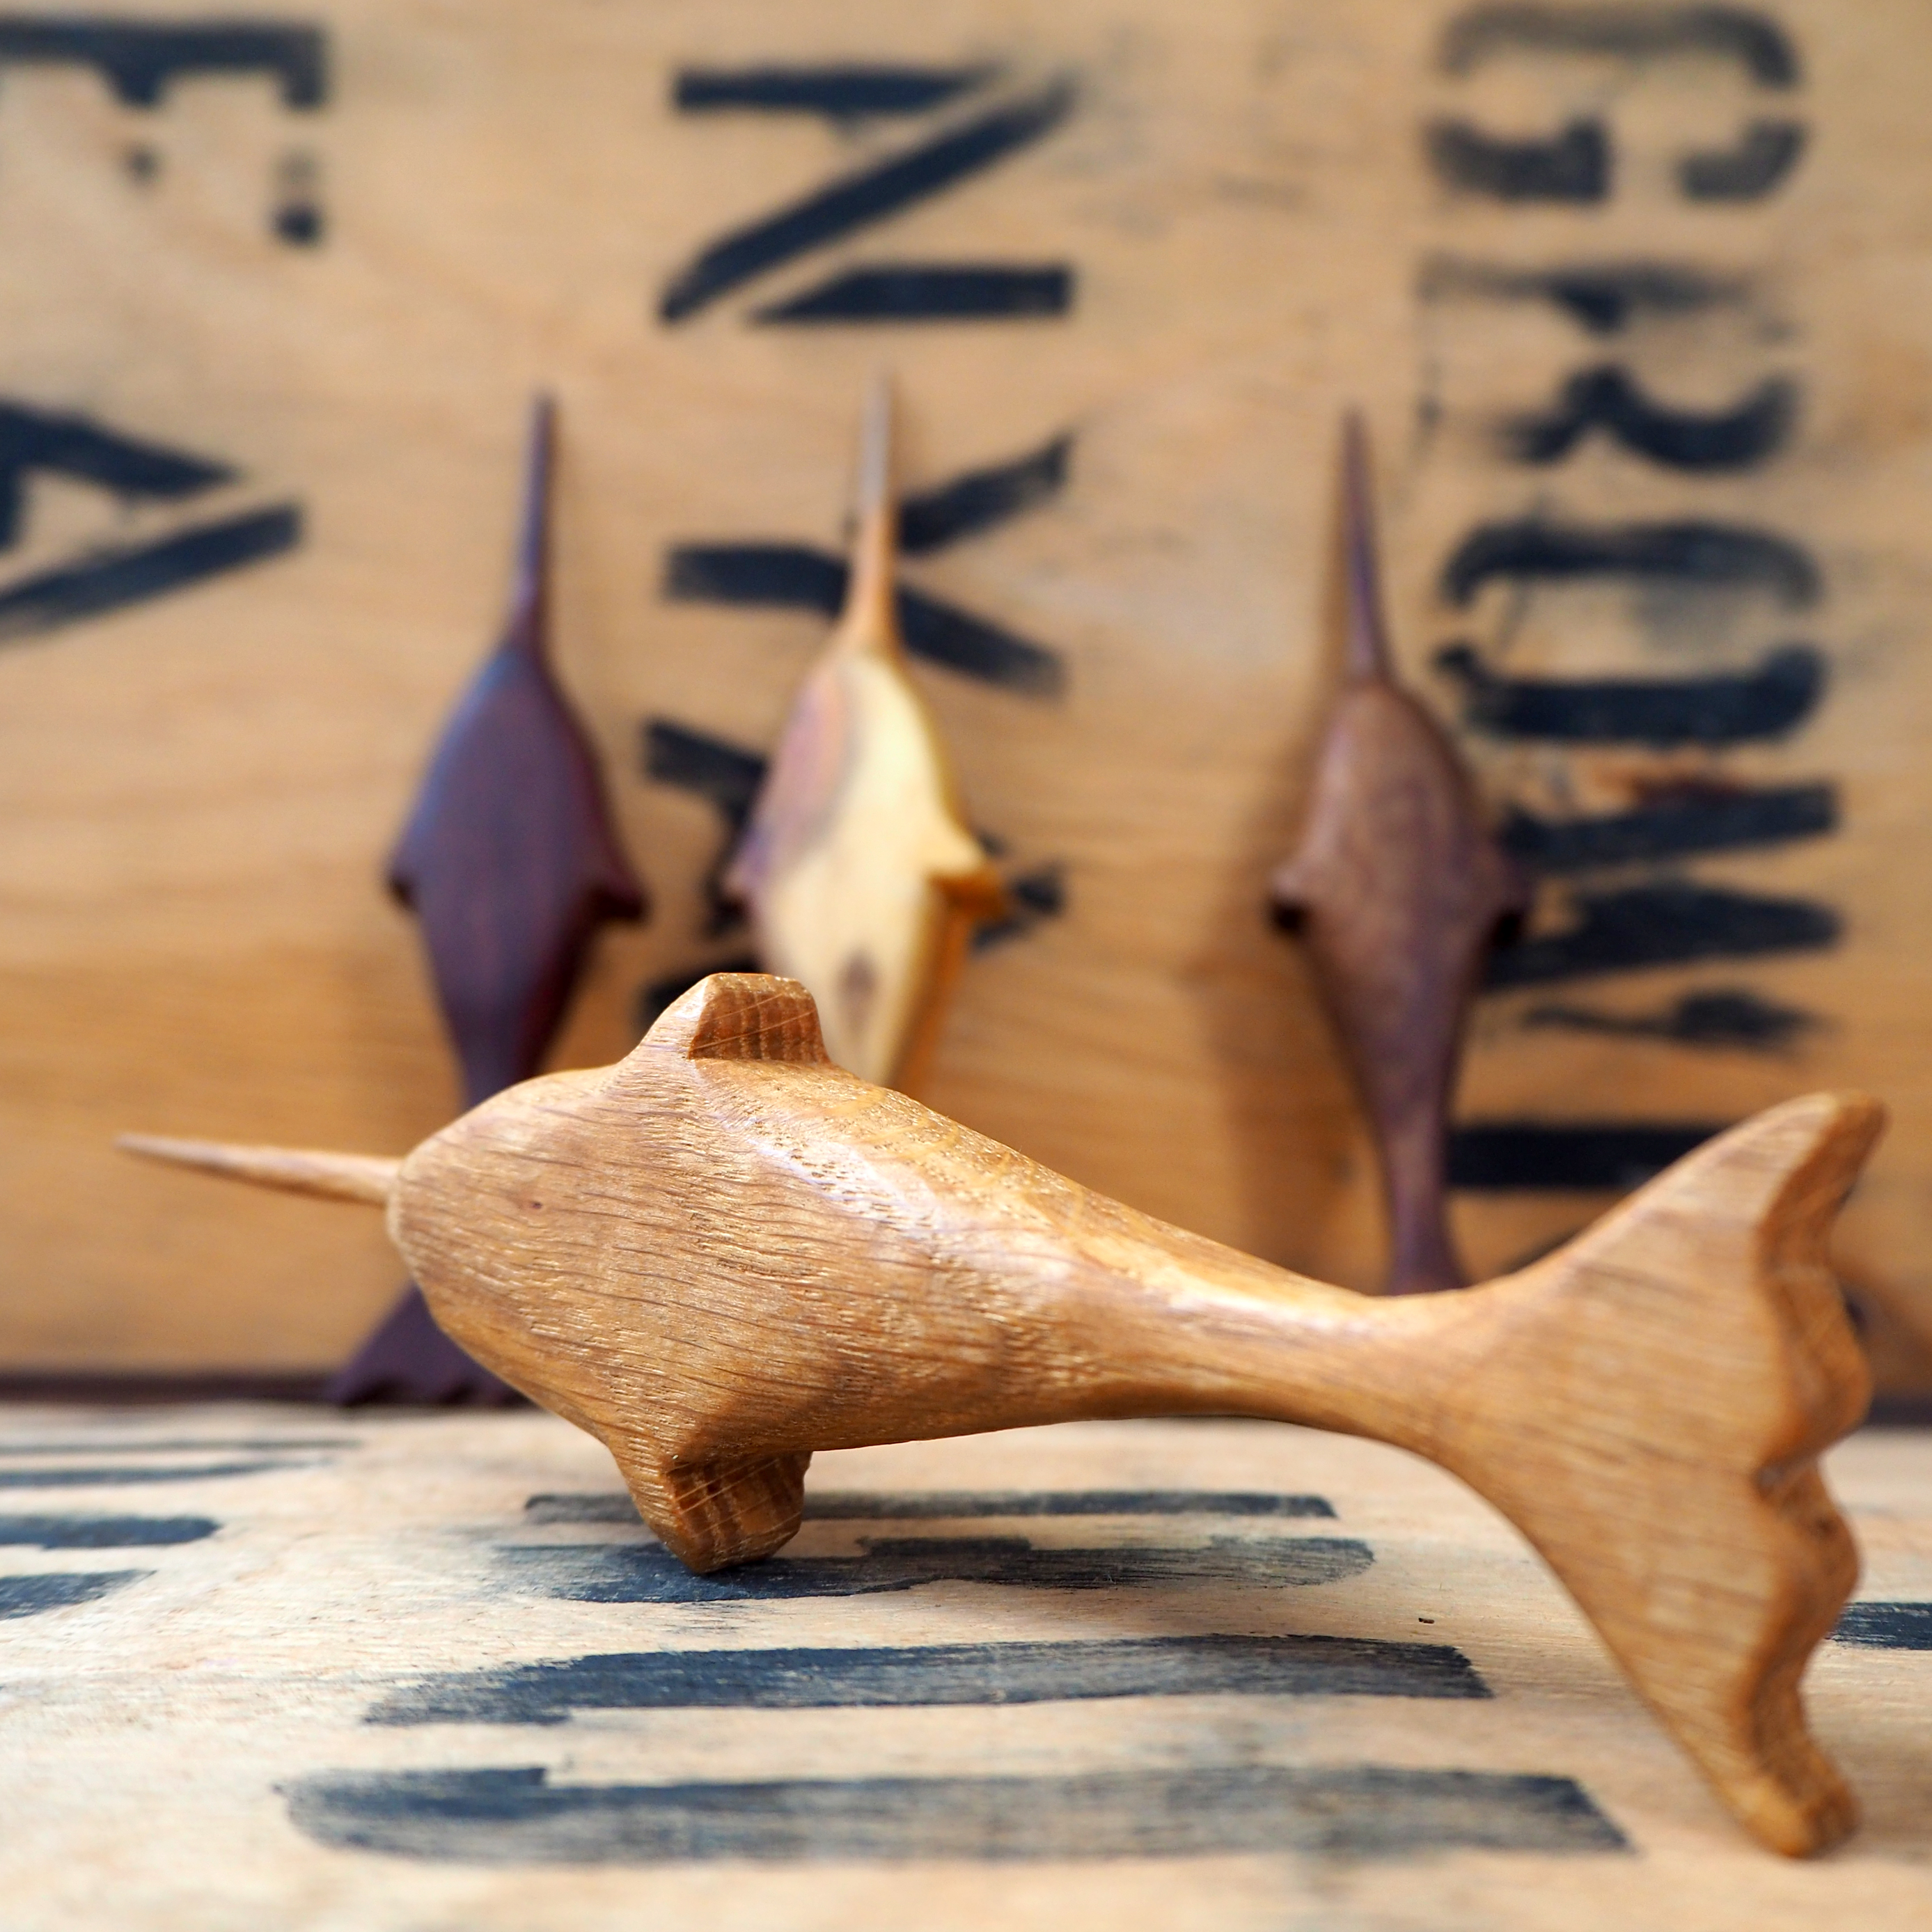 Oak Tea Ceremony Narwhal By Rosie Brewer